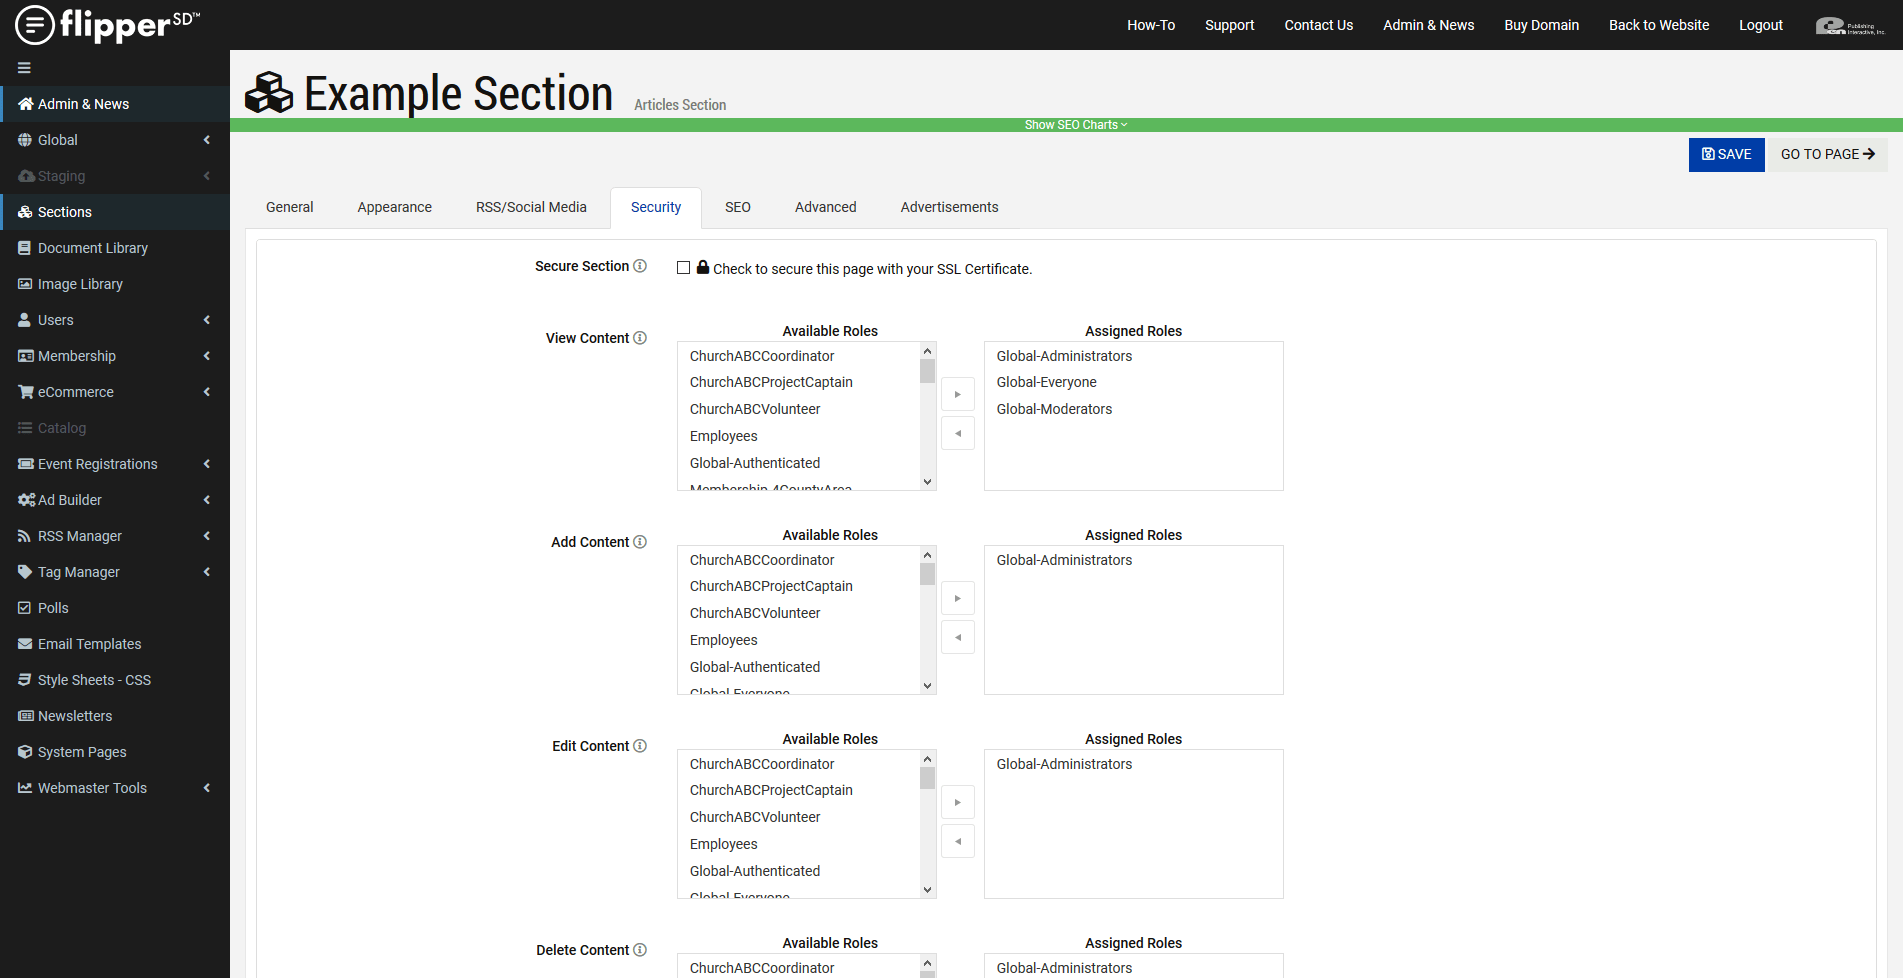 Articles Section-Role Based Permissions